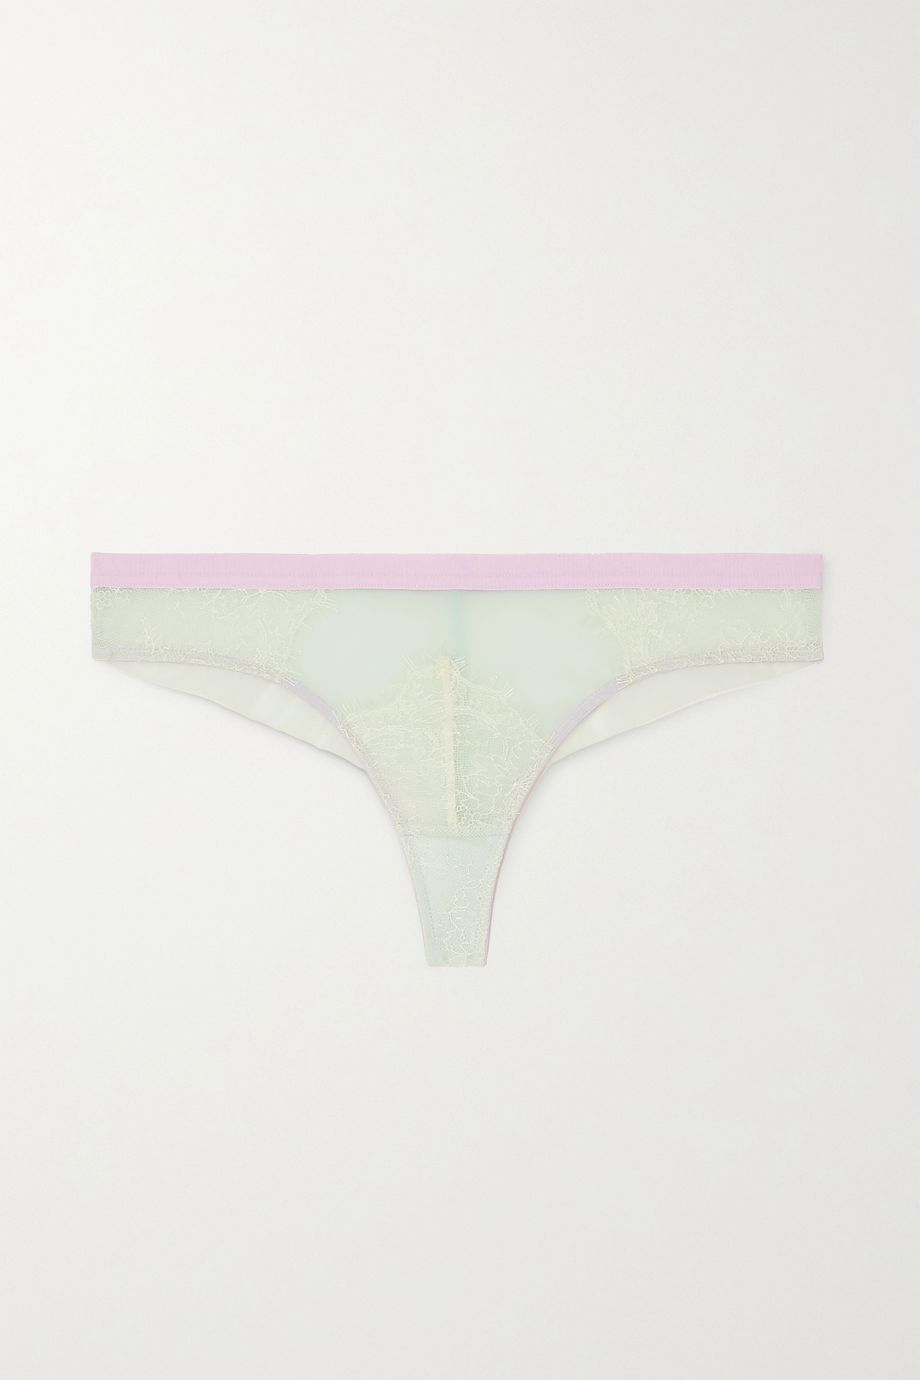 Dora Larsen Marlowe stretch-lace and tulle briefs